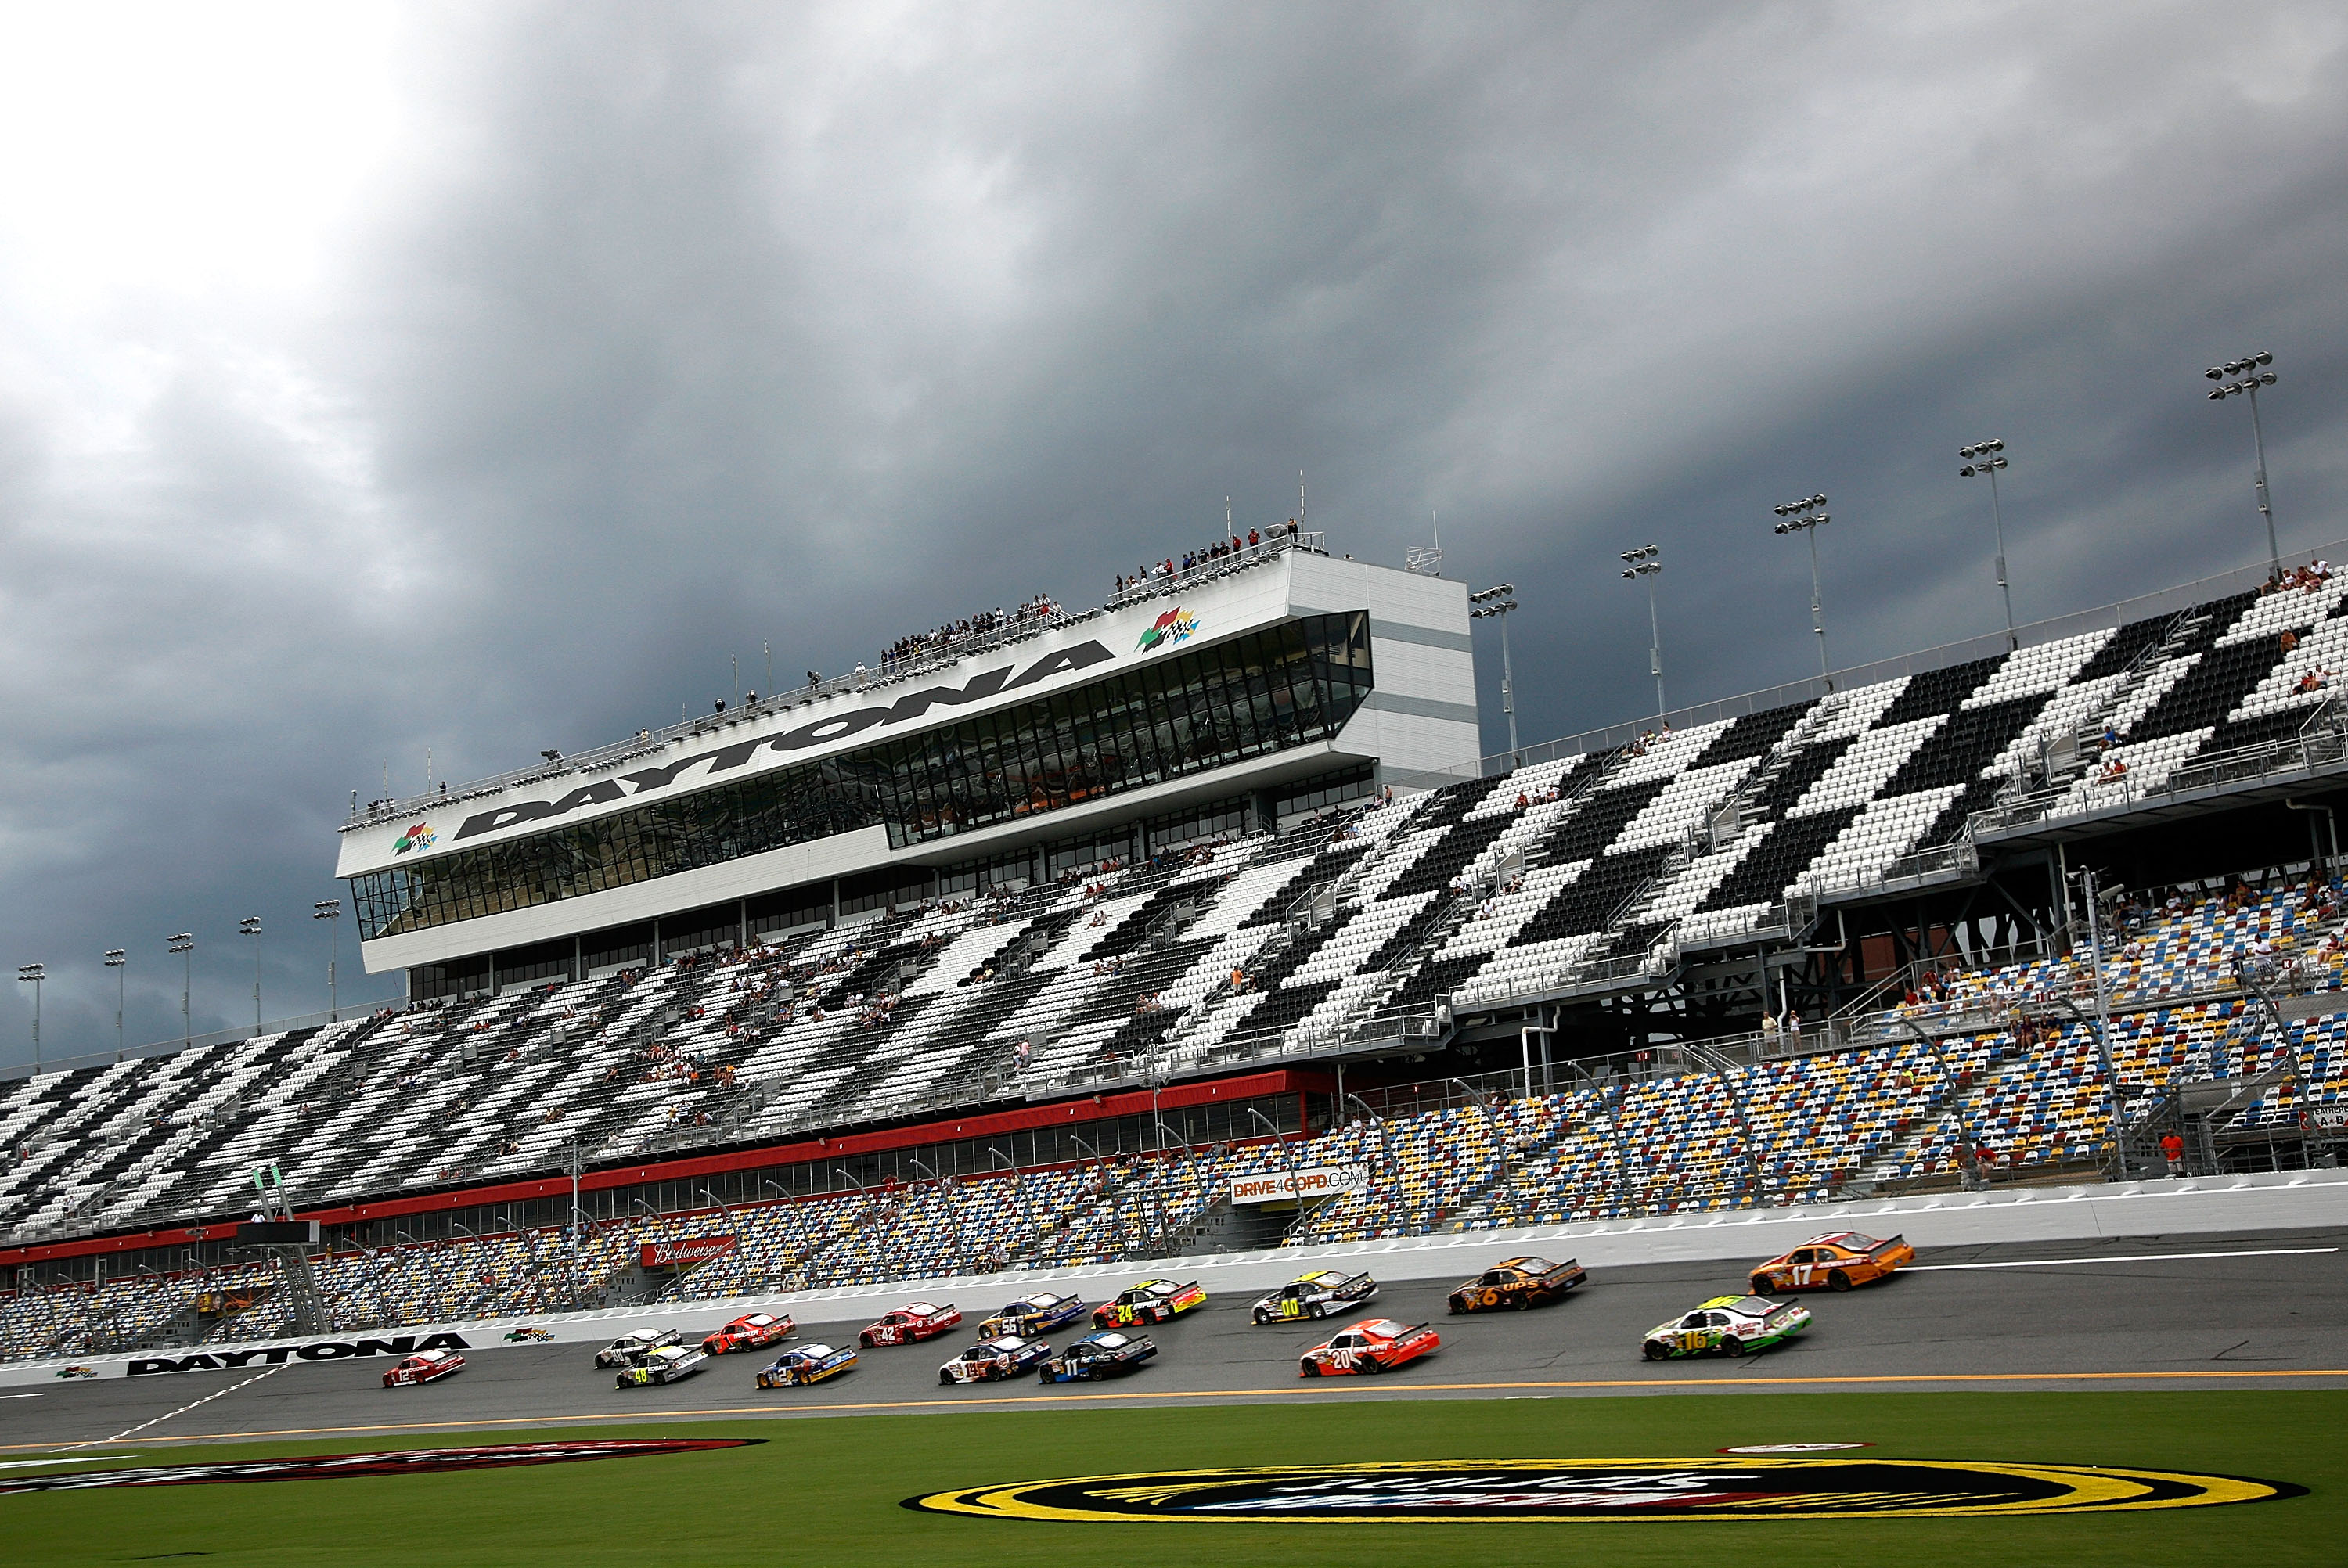 DAYTONA BEACH, FL - JULY 01:  Cars practice for the NASCAR Sprint Cup Series Coke Zero 400 at Daytona International Speedway on July 1, 2010 in Daytona Beach, Florida.  (Photo by Jerry Markland/Getty Images for NASCAR)